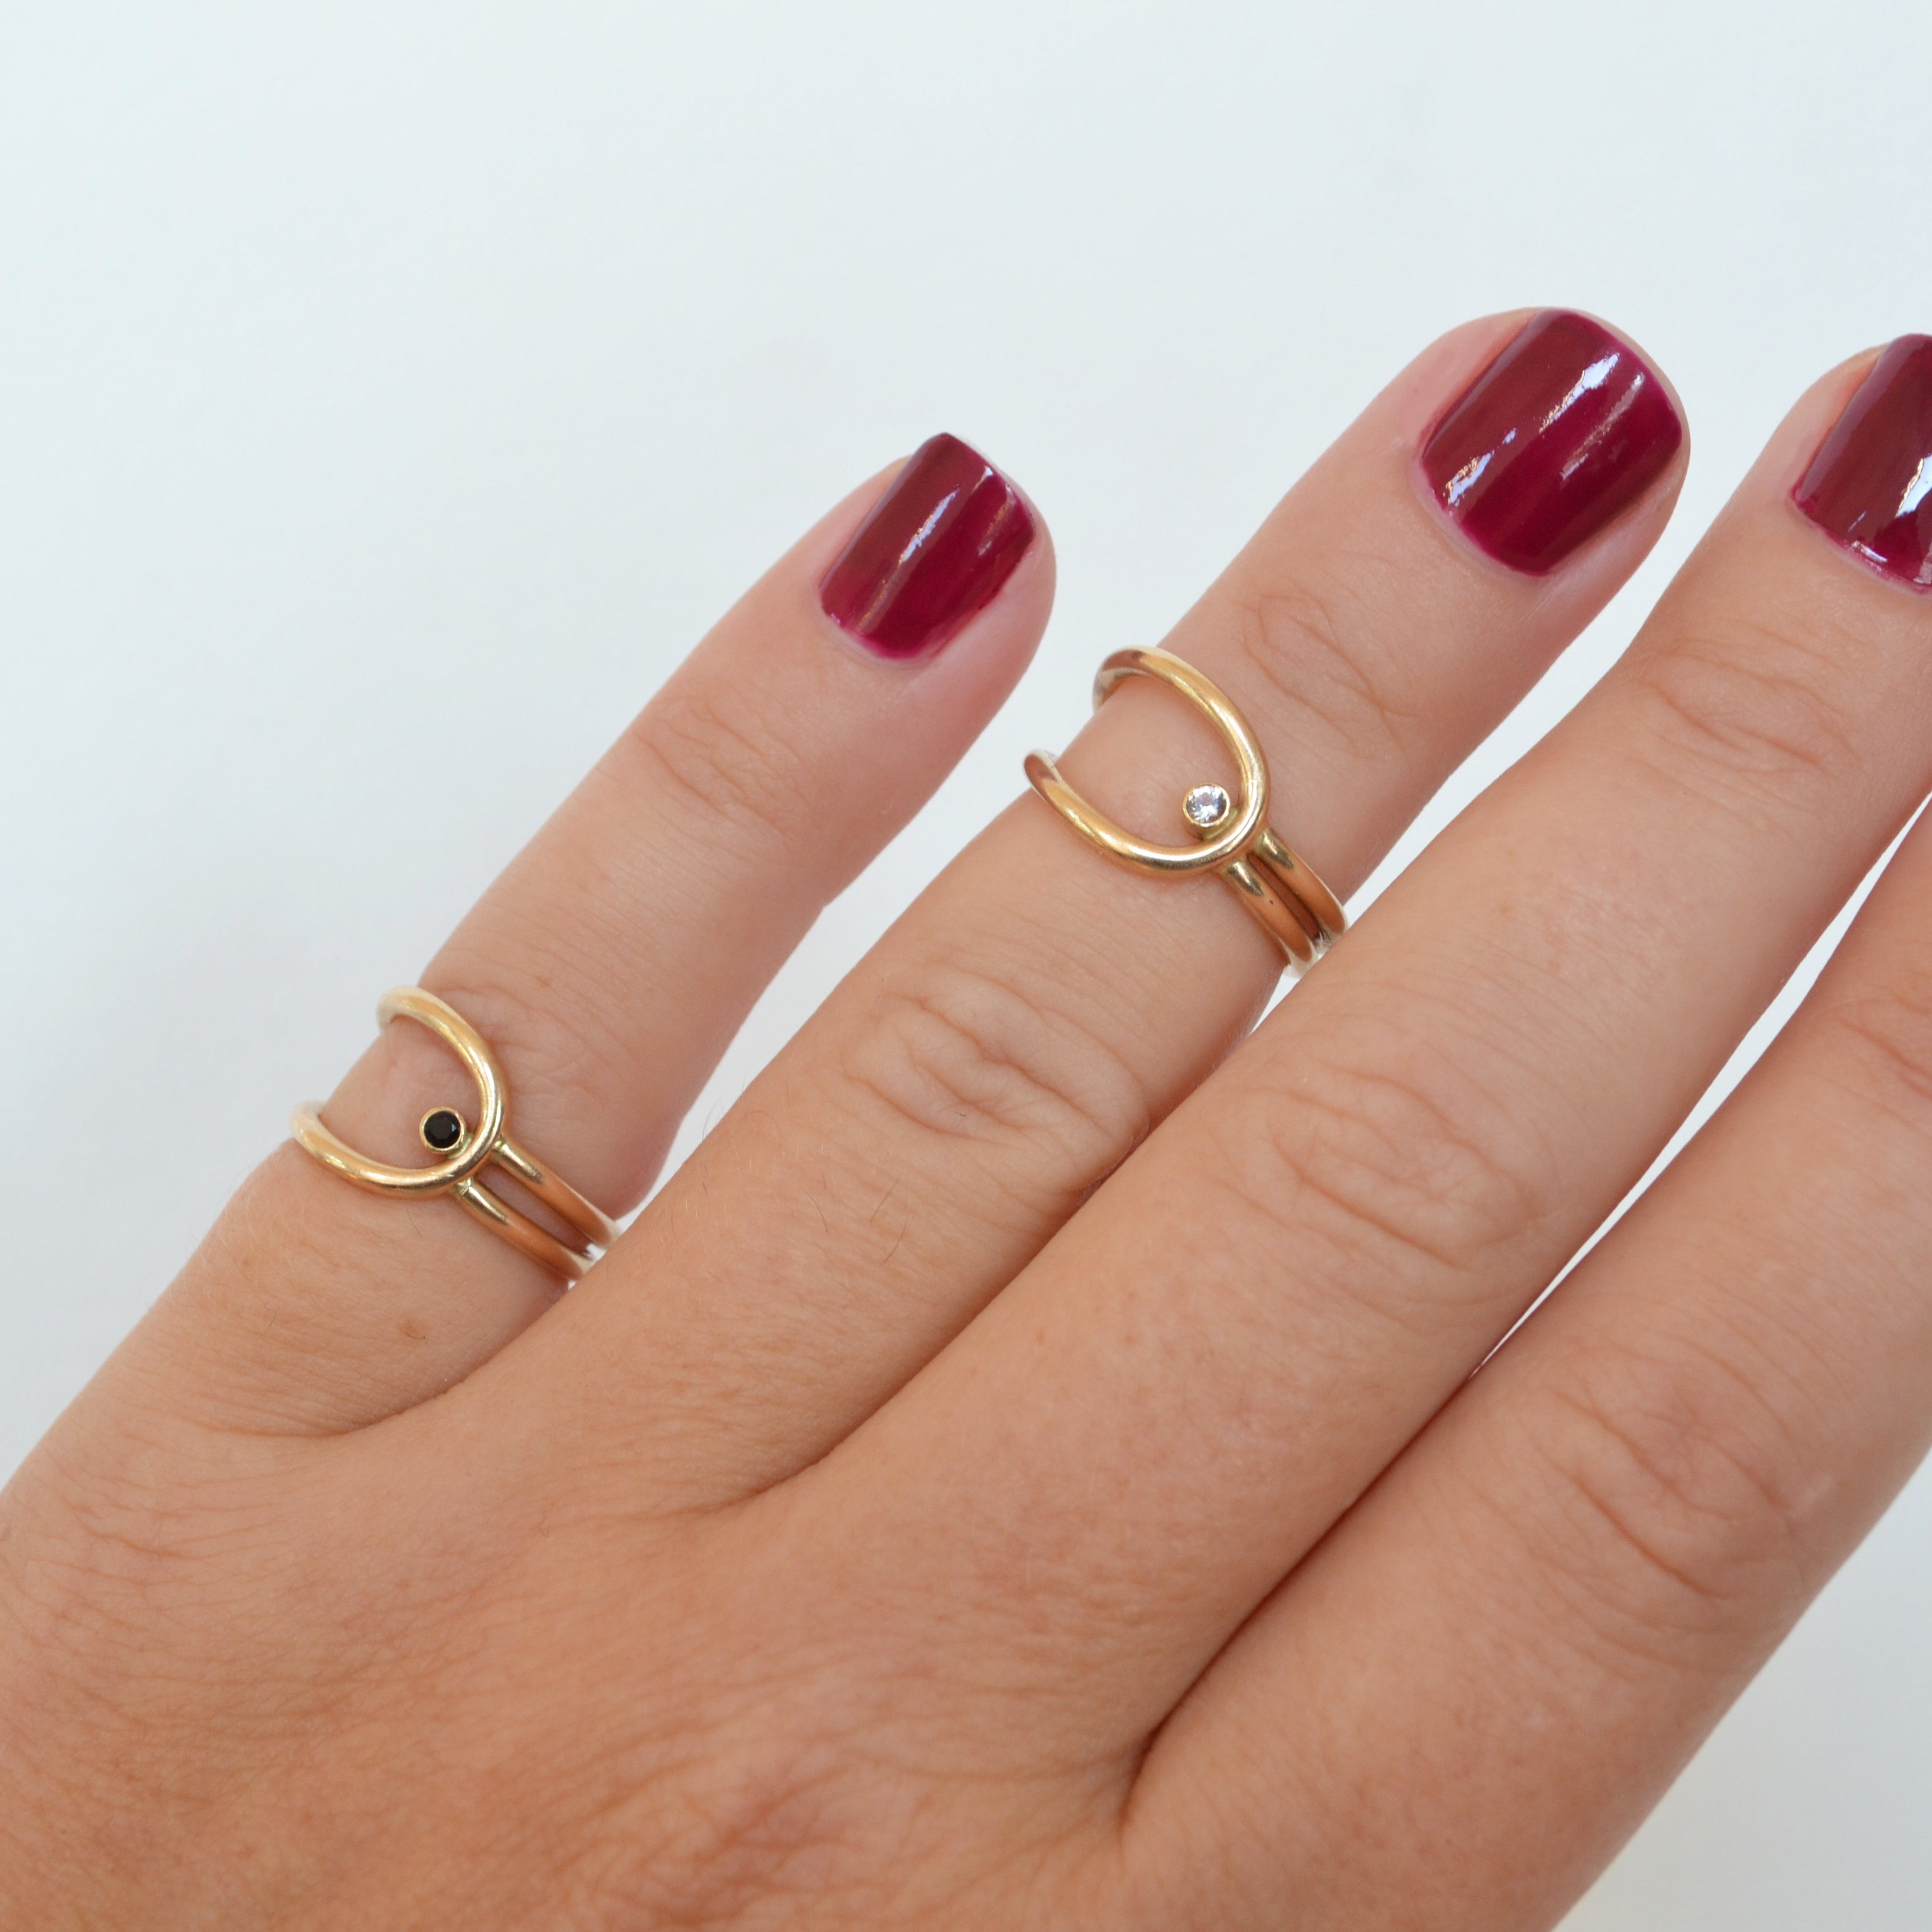 Lasso Ring in Black Spinel, Gold or Silver